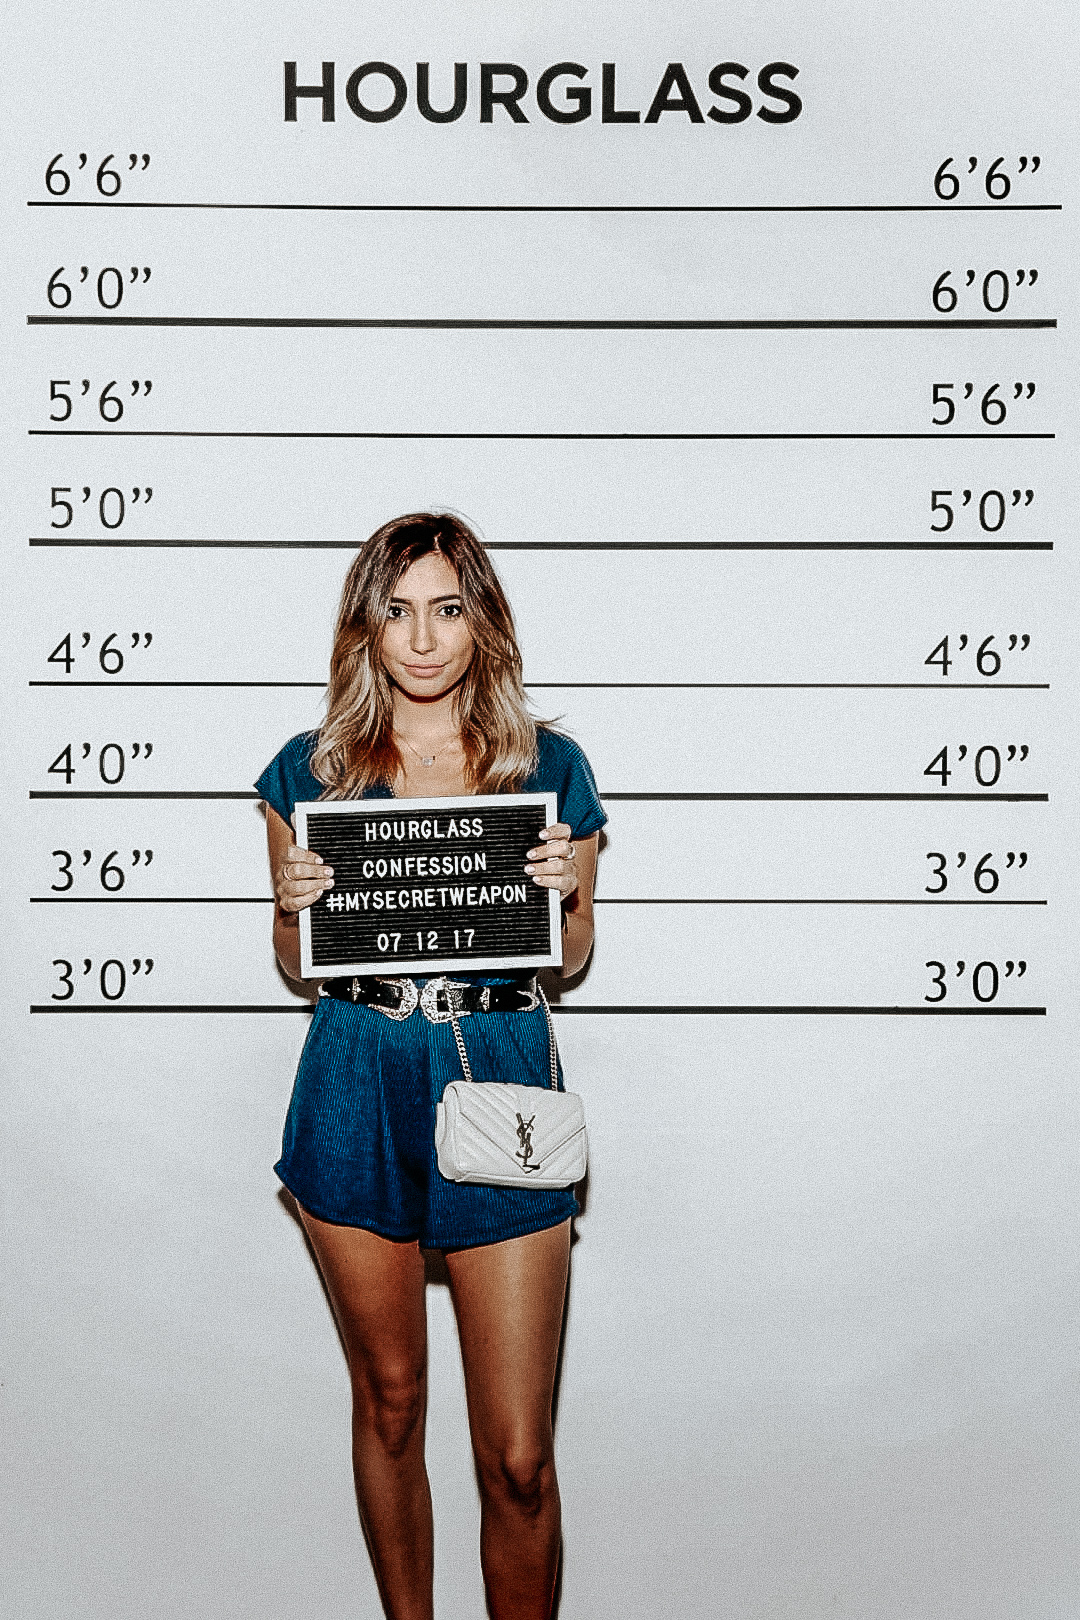 My MUGSHOT. Iconic! - WE WORKED OUR WAY THROUGH THE ROOMS BACKWARDS… THIS WAS DEFINITELY SUPPOSED TO BE THE FINALE BUT OH WELL!I gotta admit… I'm not as tall as it says in my mugshot. Thank you to my chunky heels that gave me an extra couple inches in this shot 😉 I'm actually just 5 feet… most people are pretty surprised by my size when they see me in person. I used to always wish I was taller, more like 5'4 or something like that… but anyways, we're getting off topic!Let's talk outfit details…Romper | Shoes (similar) | Belt | Purse